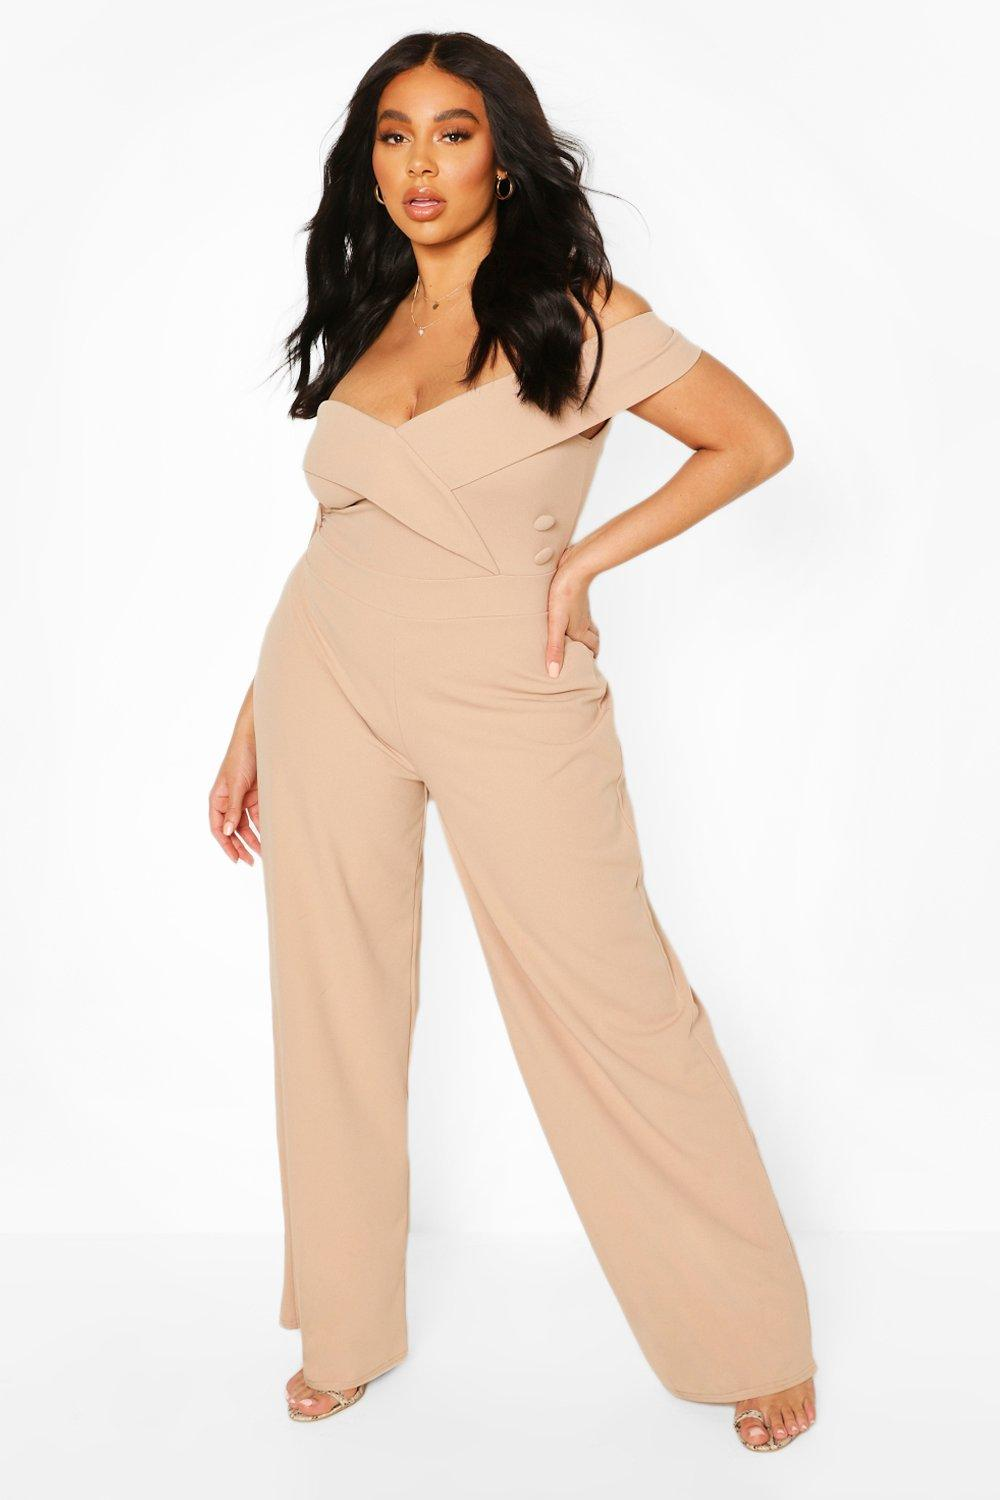 boohoo Womens Plus Bardot Button Detail Jumpsuit - Beige - 20, Beige